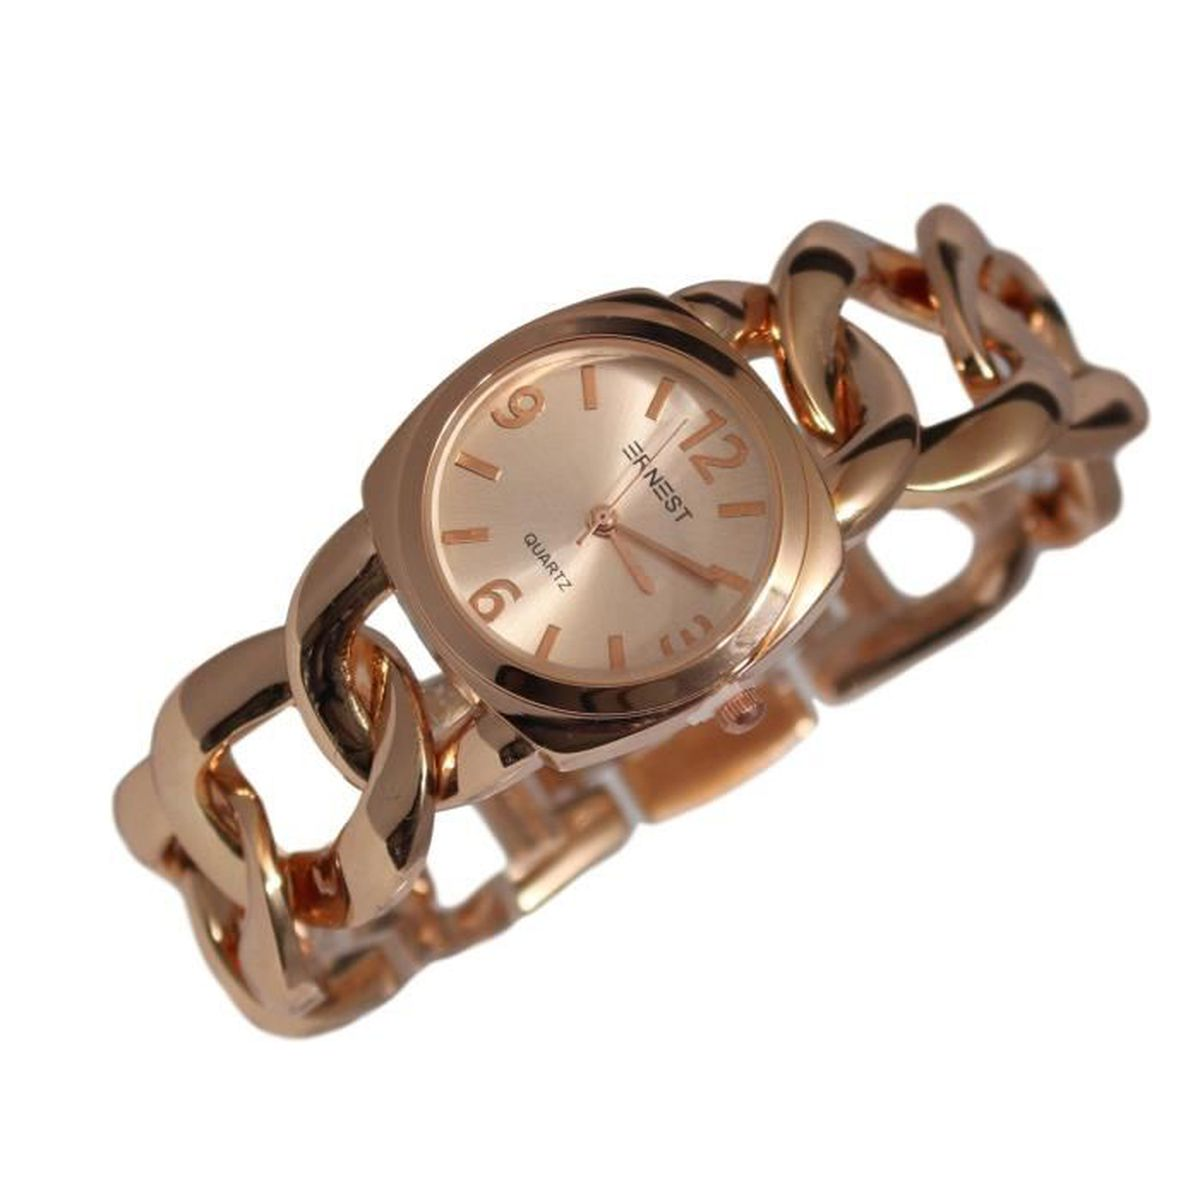 7adc075455e MONTRE FEMME MAILLE TRESSEE ITALIENNE GOLD PINK OR ROSE - Achat ...